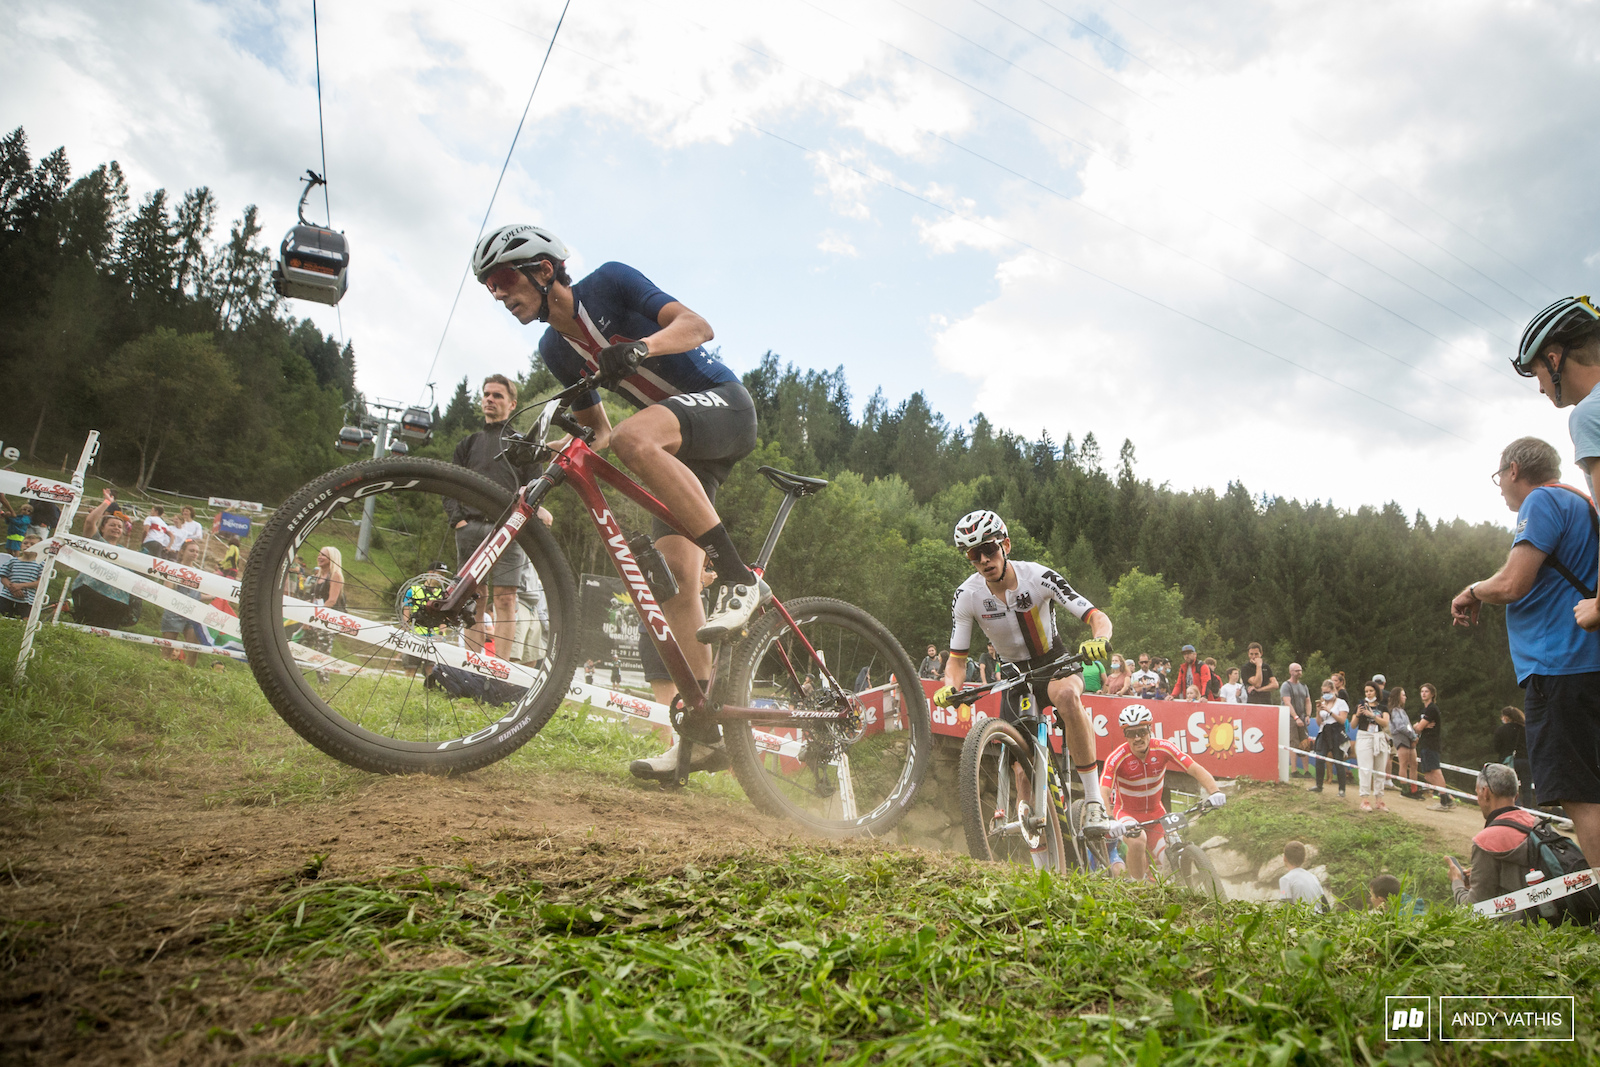 Chris Blevins making his way up the pack with Max Brandl in tow.